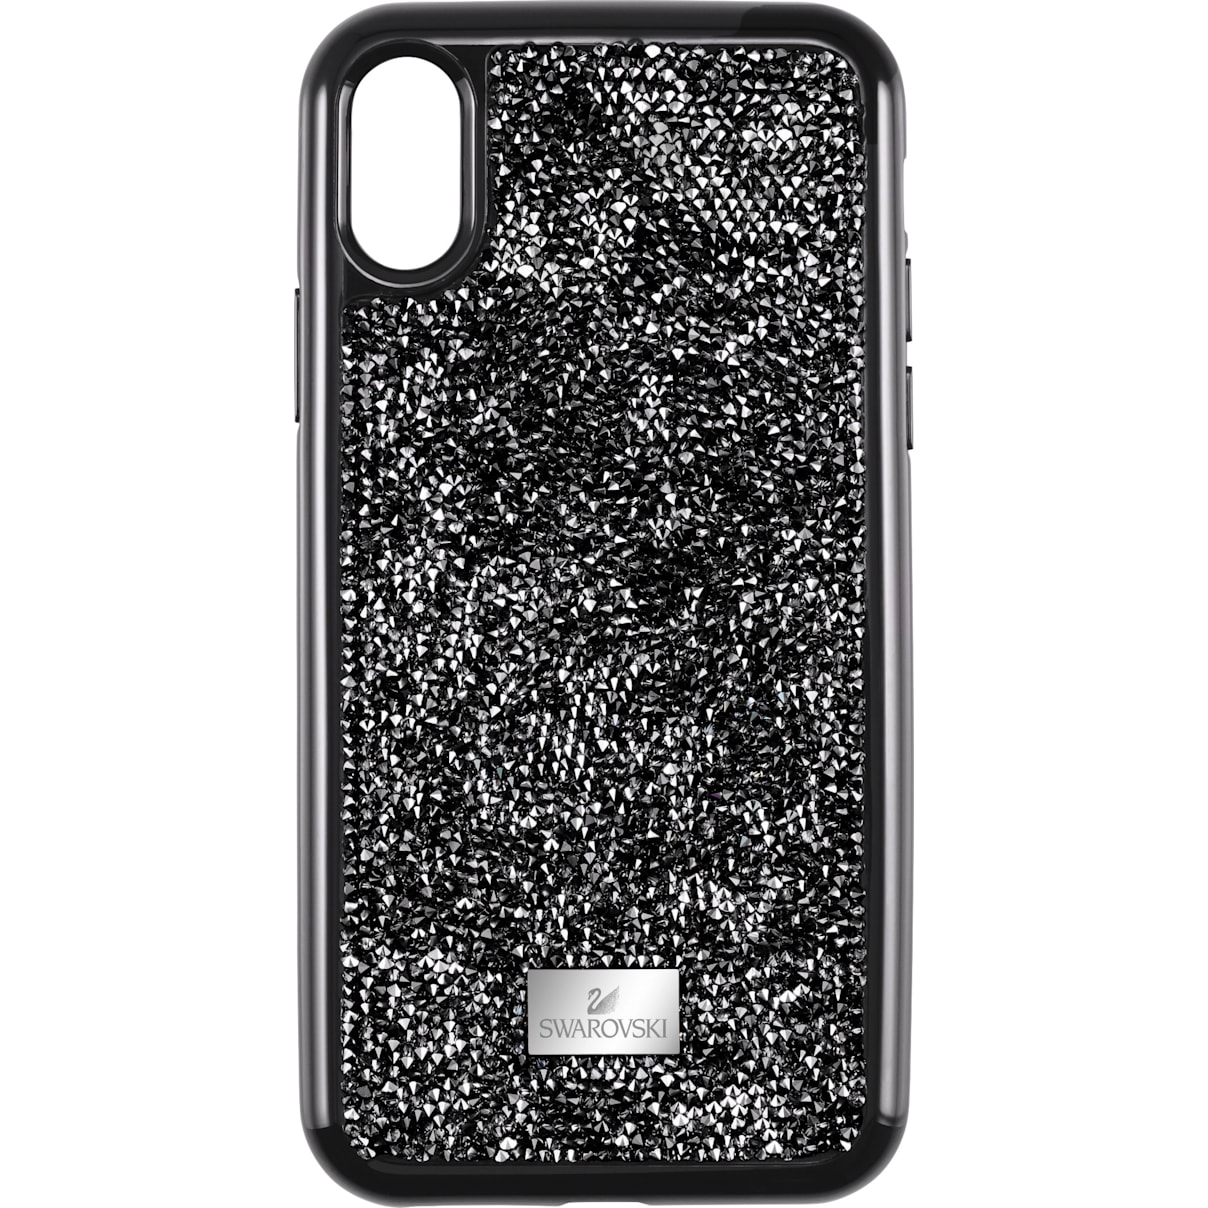 Swarovski Glam Rock Smartphone Case with Bumper, iPhone® XS Max, Black